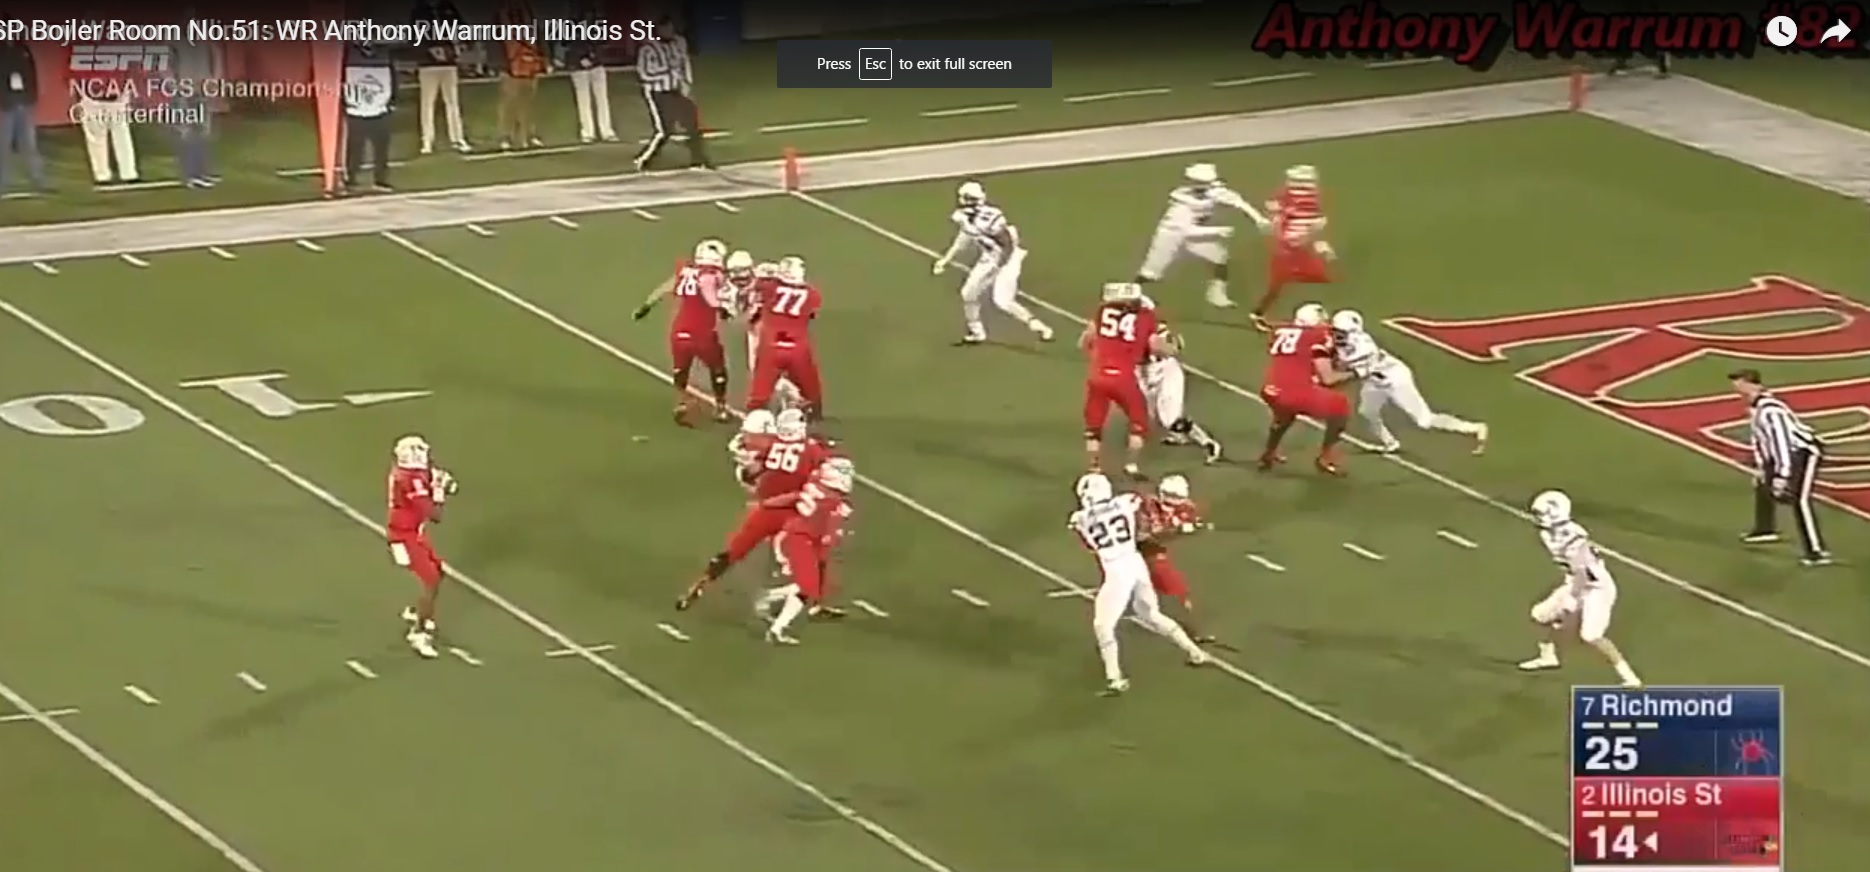 RSP Boiler Room No.51: WR Anthony Warrum, Illinois St.